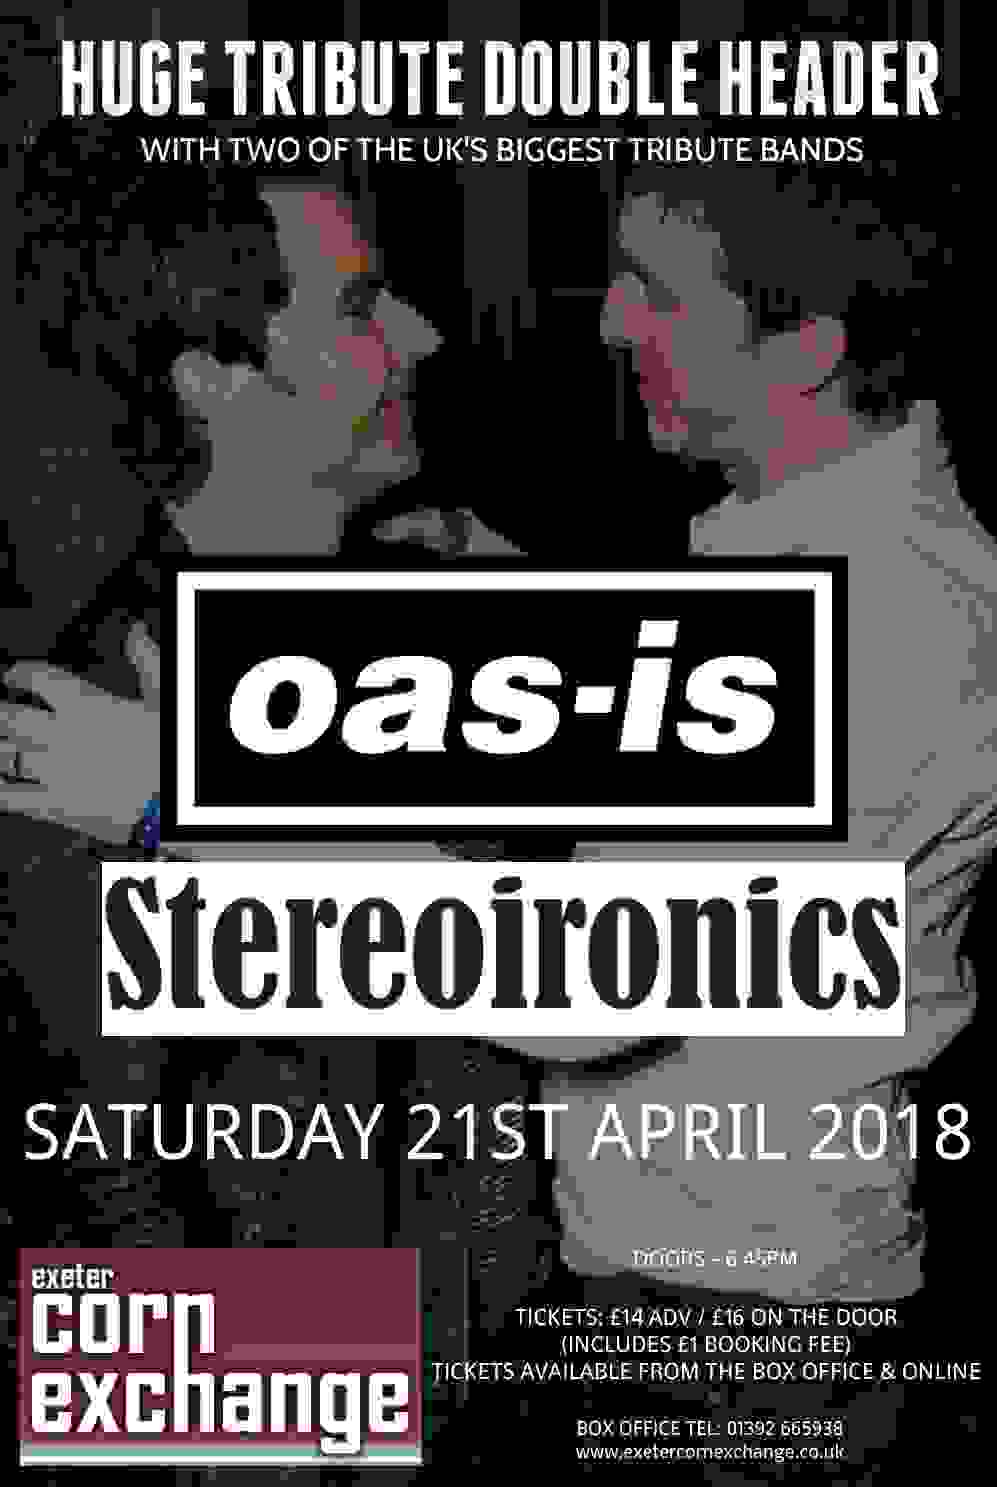 Oas-is & Stereoironics